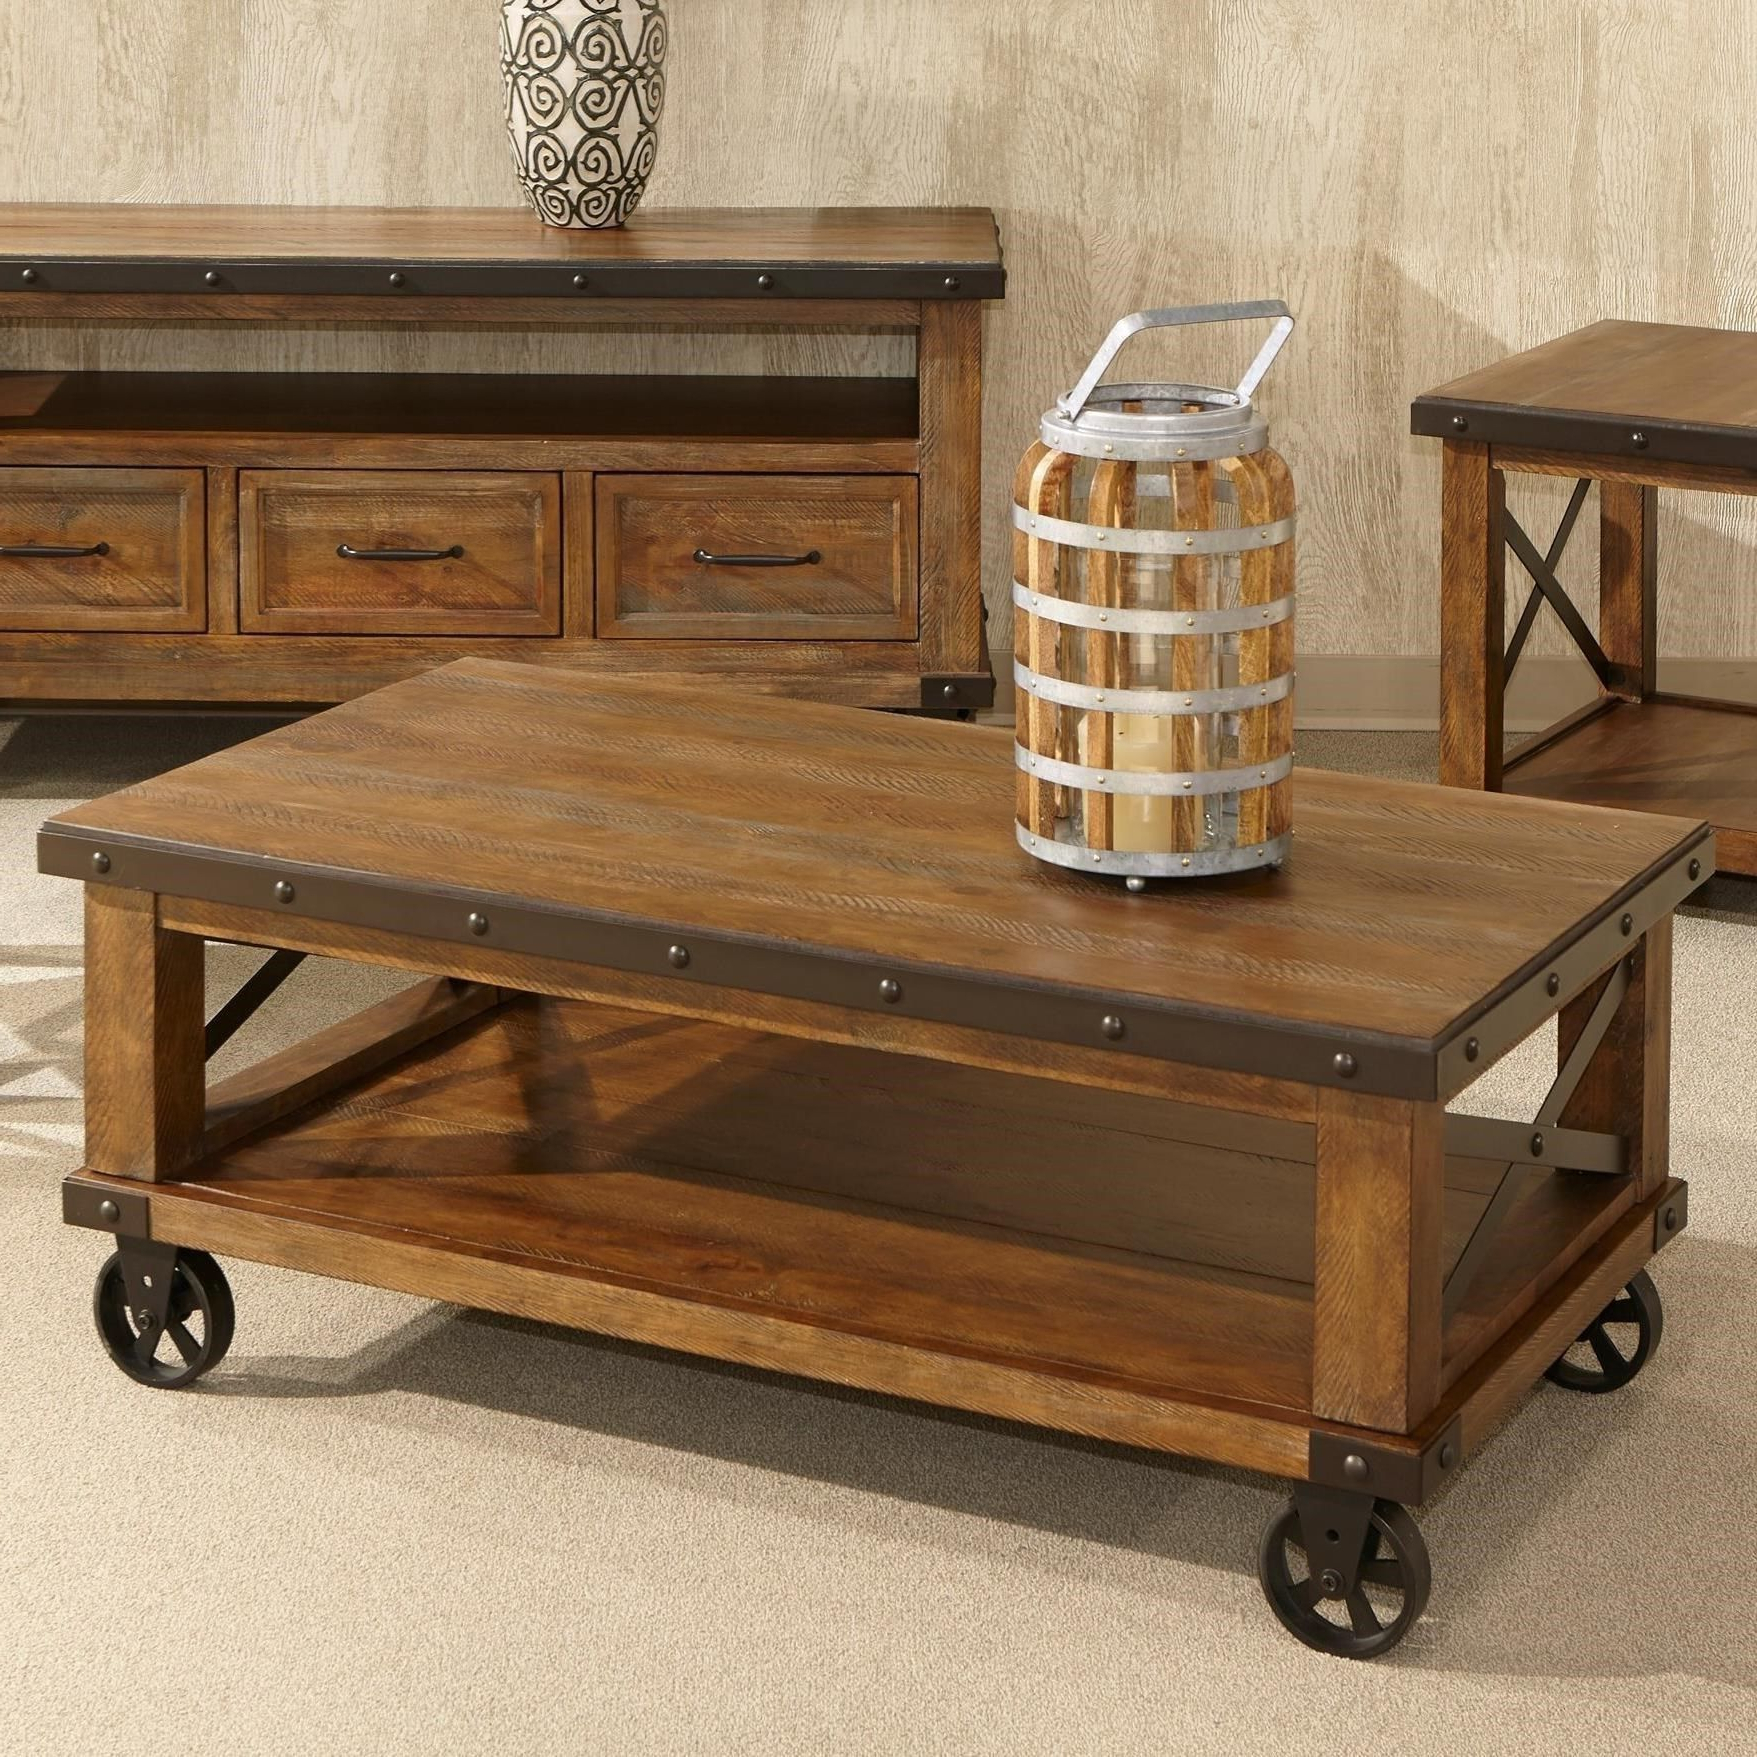 Ontario Cocktail Tables With Casters Throughout Popular Taos Rustic Coffee Table With Castersintercon In (View 9 of 20)